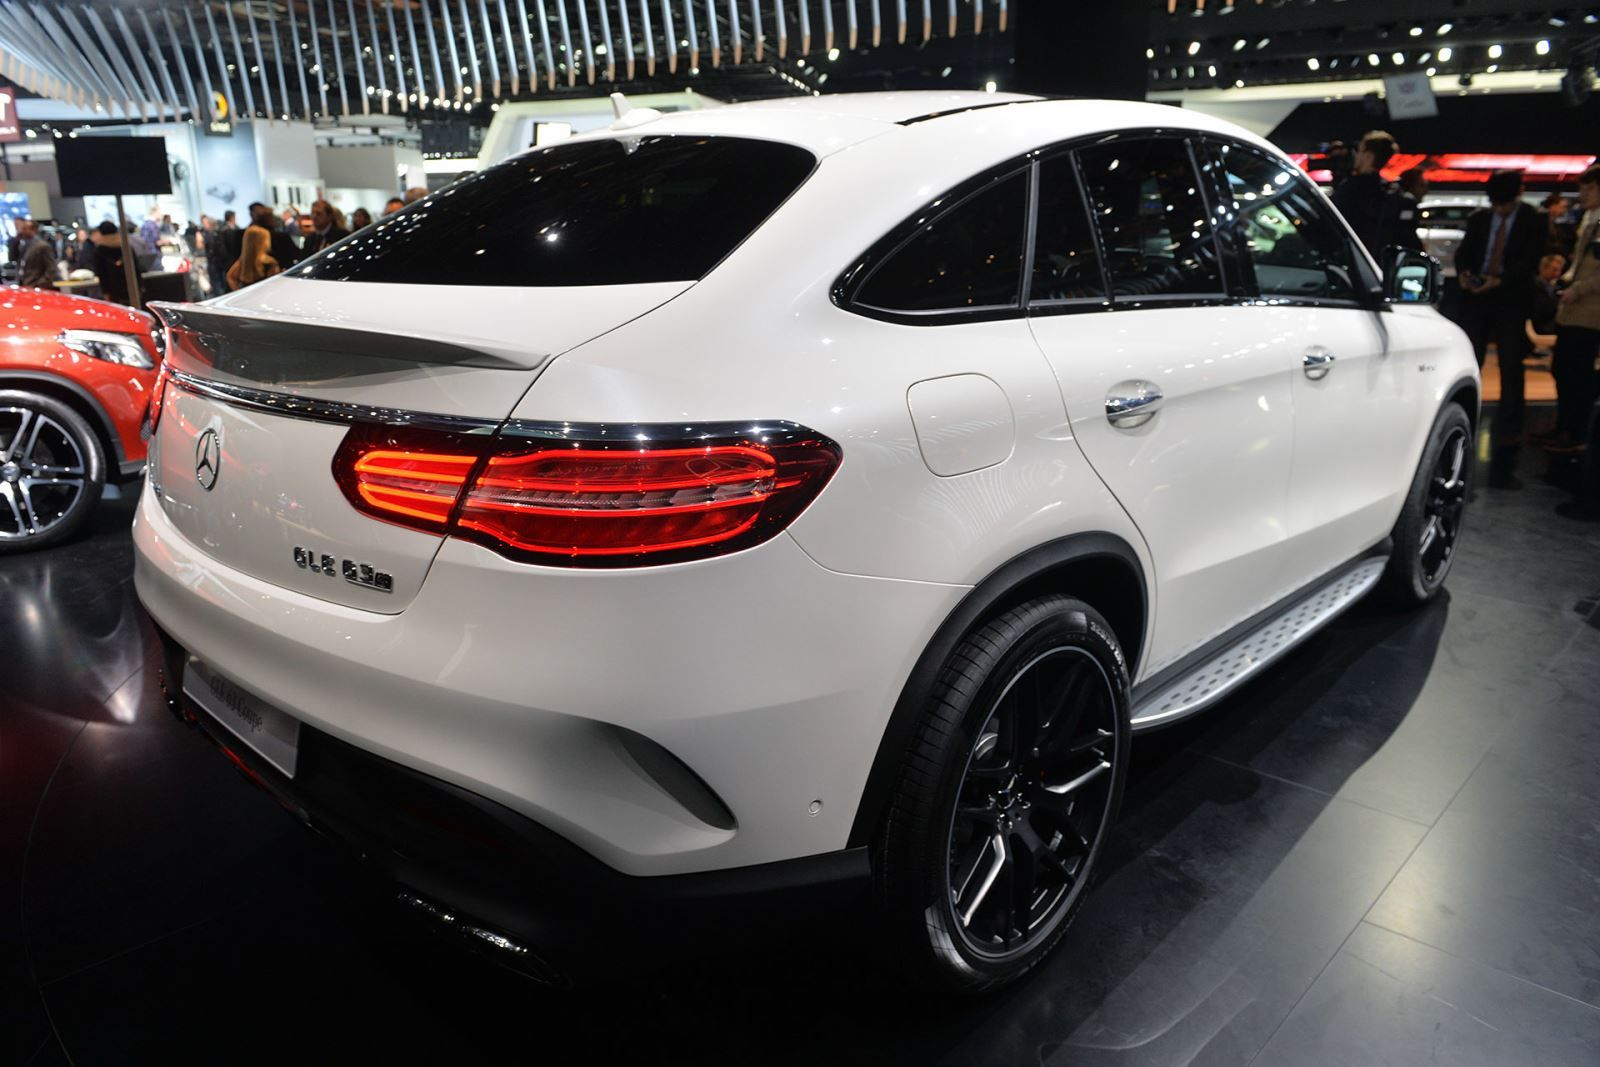 Mercedes Benz Gle Coupe 450 Amg And Gle63 At 2015 Detroit Auto